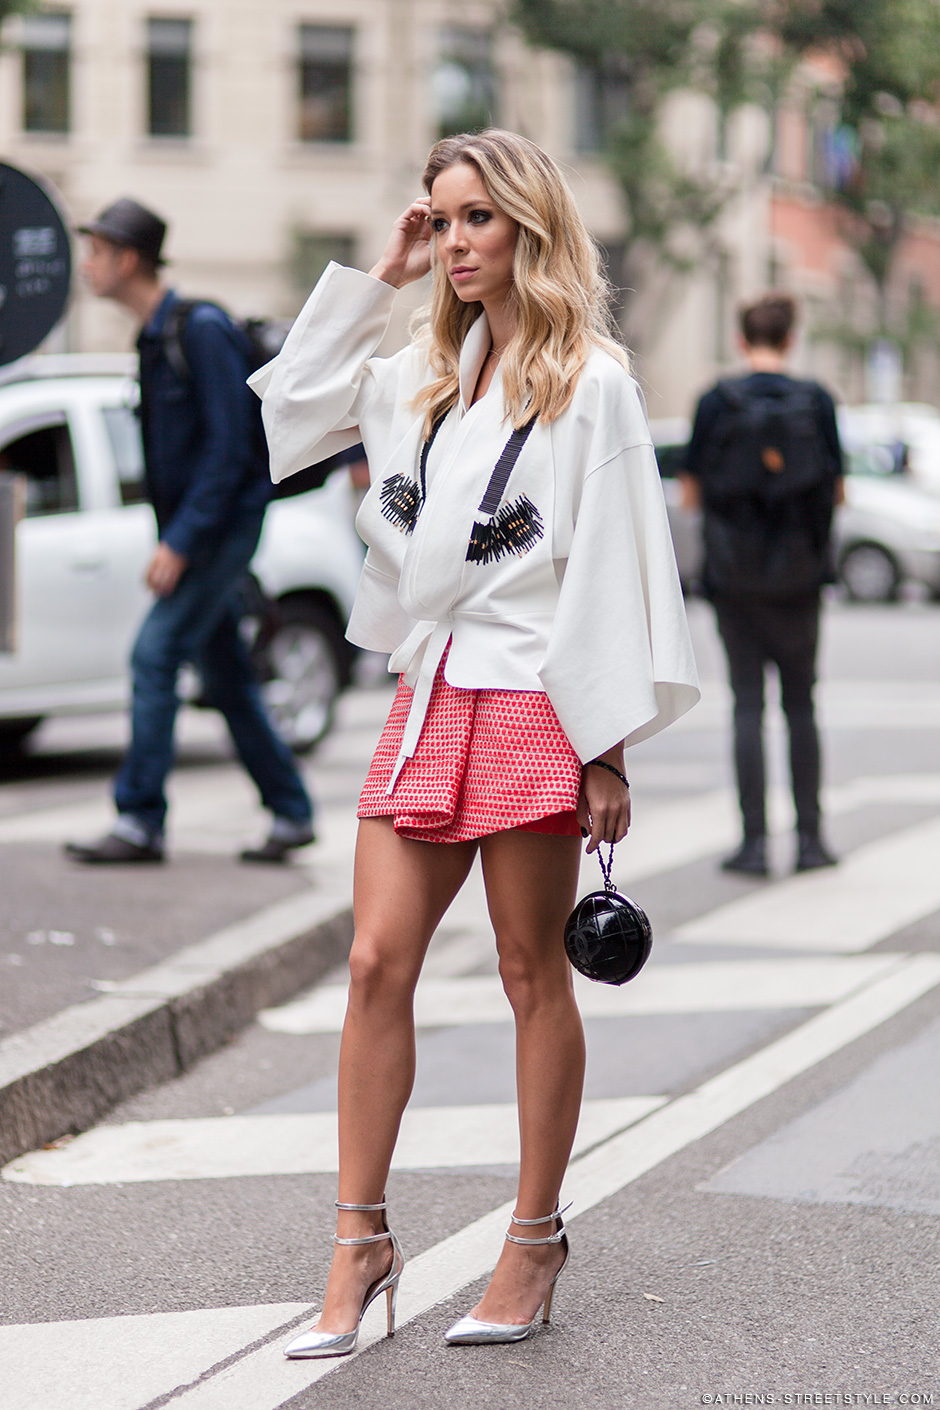 9147-athens-streetstyle-woman-mini-skirt-kimono-top-milan-fashion-week-spring-summer-2015-street-style